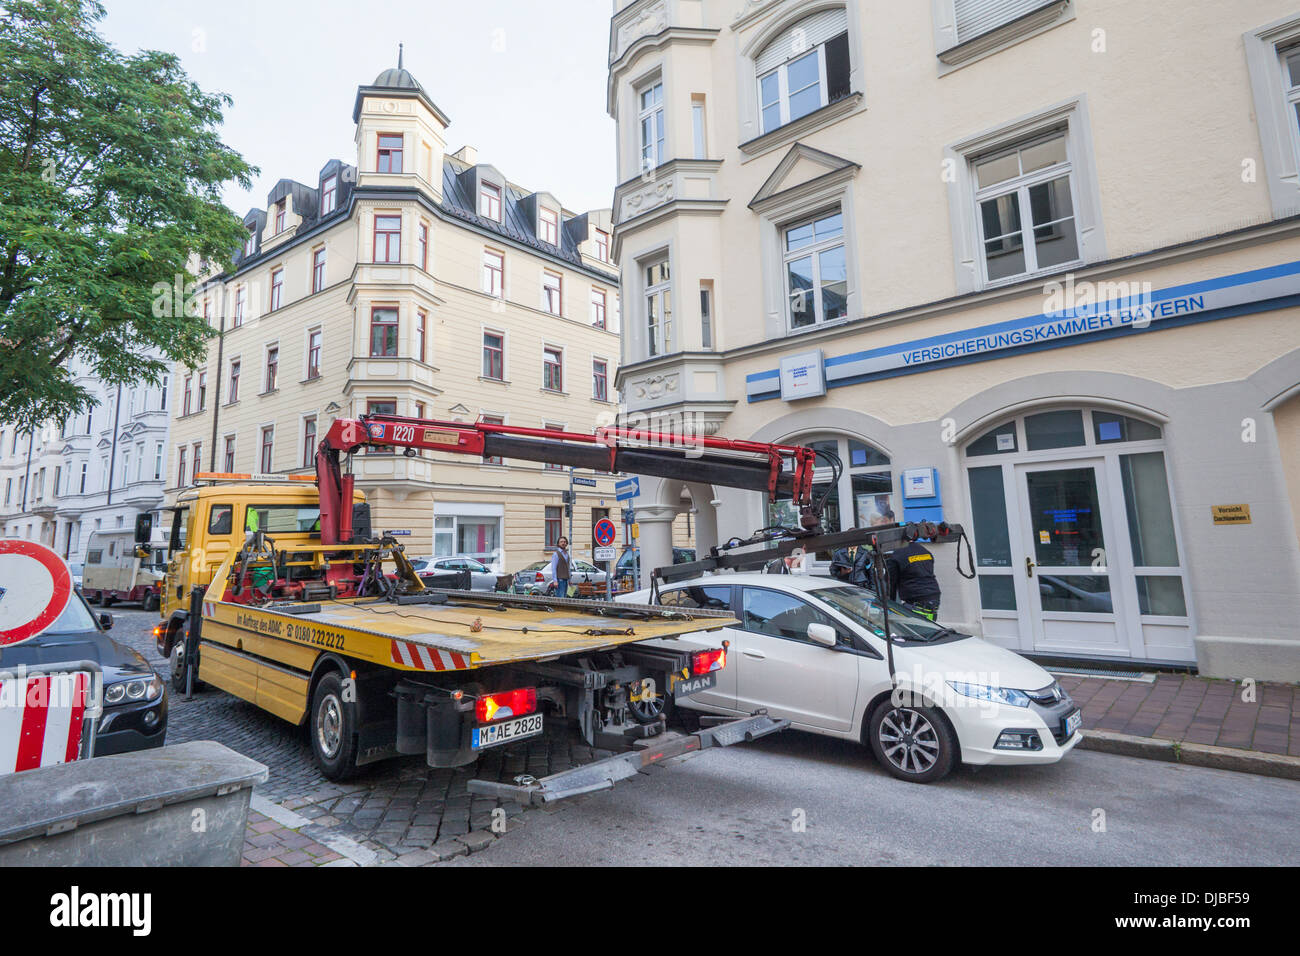 Germany, Bavaria, Munich, Illegally Parked Car being Removed Stock Photo